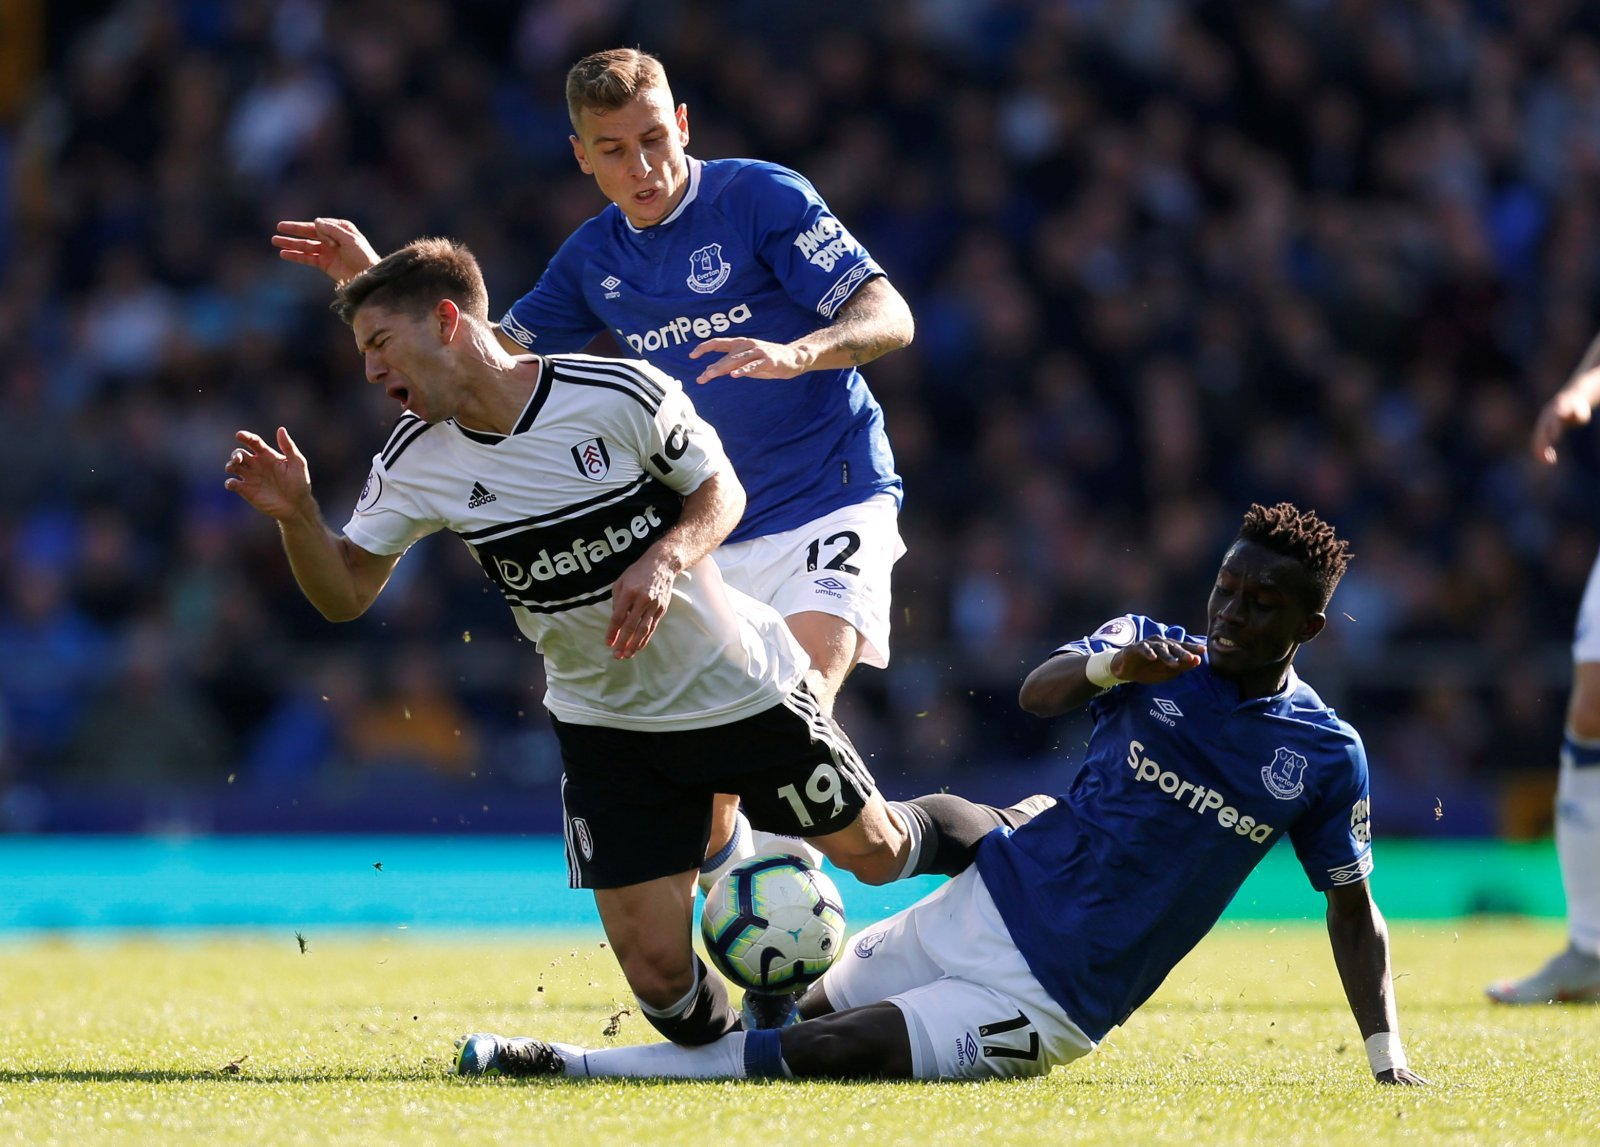 Sanctioning Idrissa Gueye's Everton exit could prompt the beginning of the end for Marco Silva